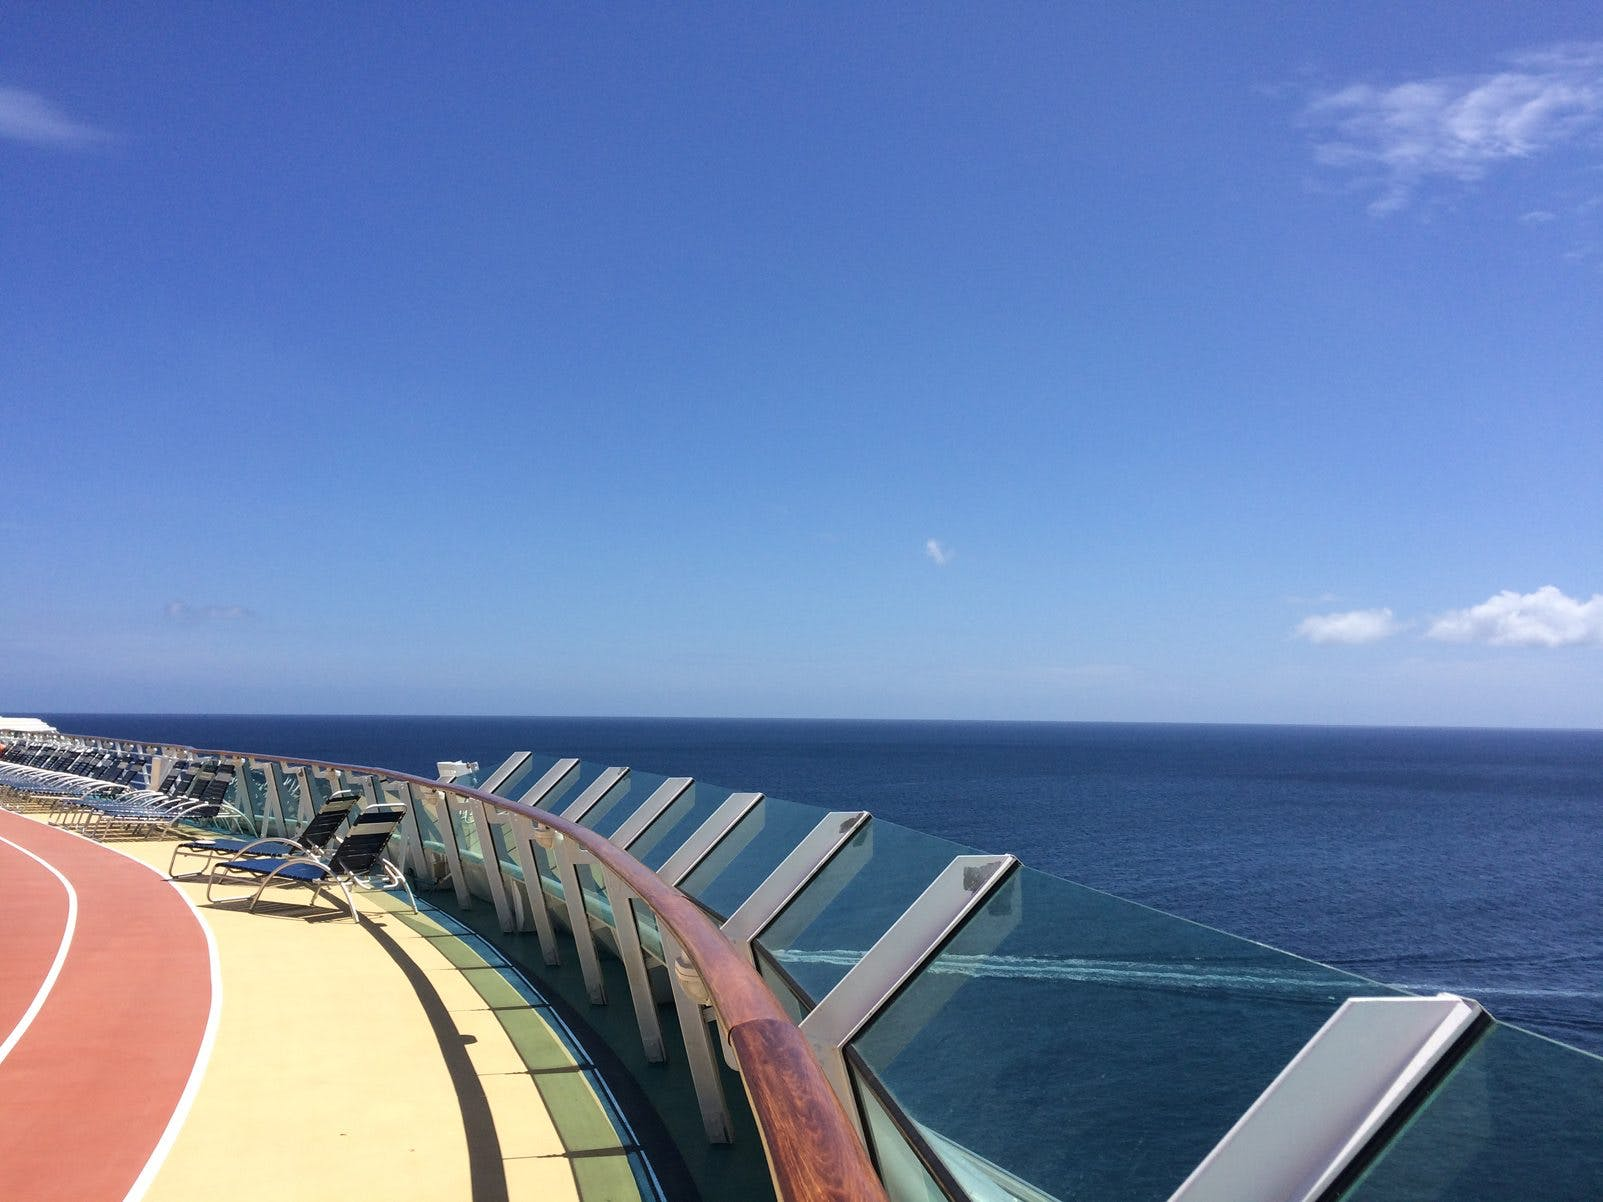 Reflections on the Low-Carb Cruise